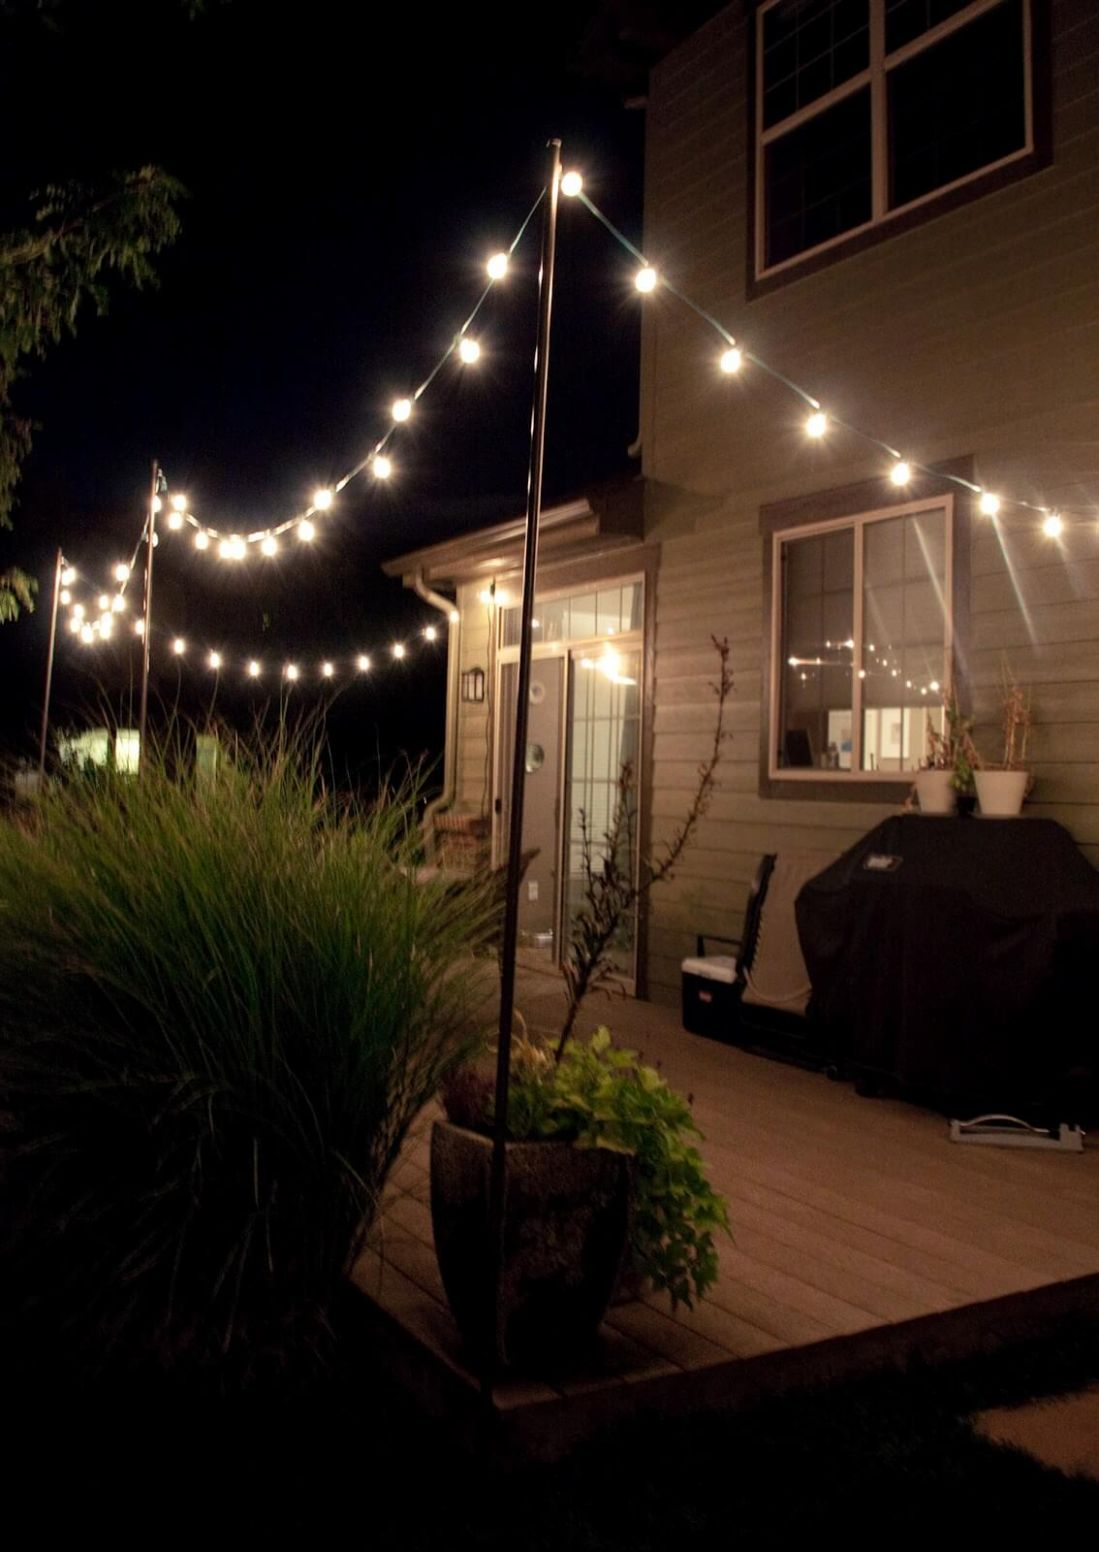 10 Best Backyard Lighting Ideas and Designs for 10 - backyard ideas lights